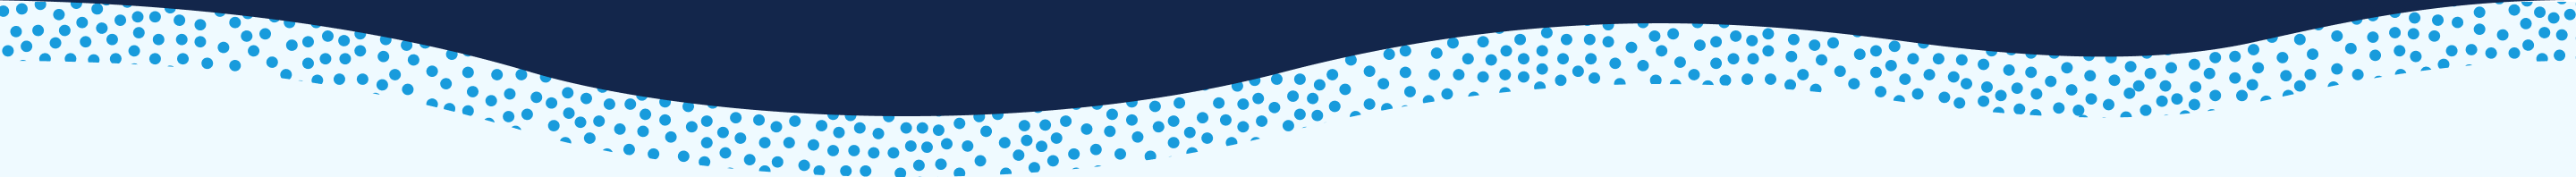 blue dots on white wave